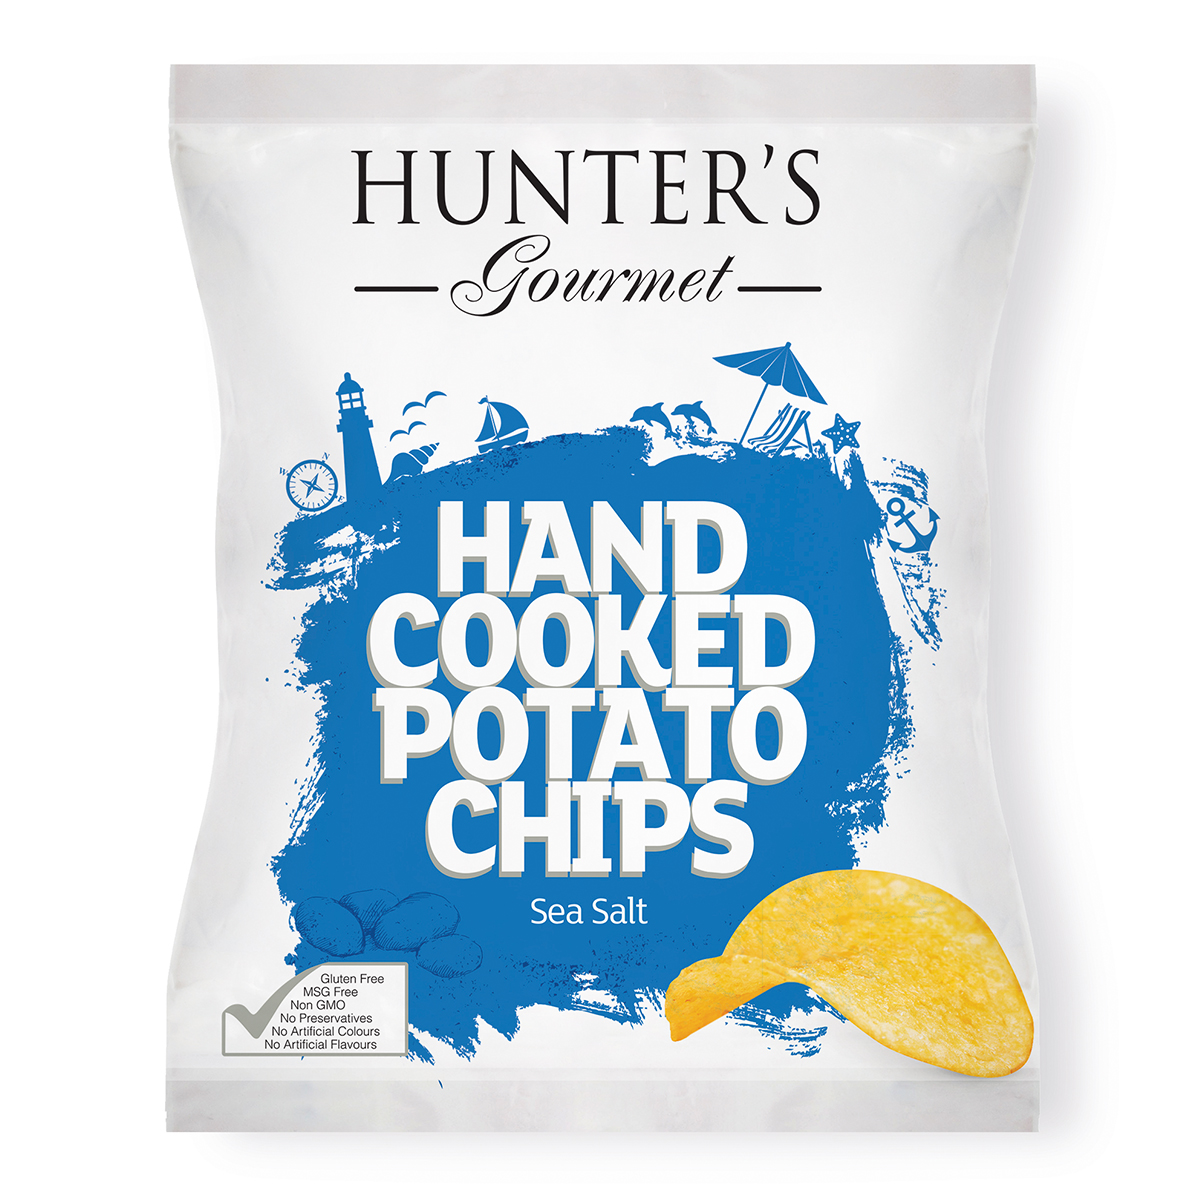 Hunter's Gourmet Hand Cooked Potato Chips – Sea Salt & Cider Vinegar (125gm)